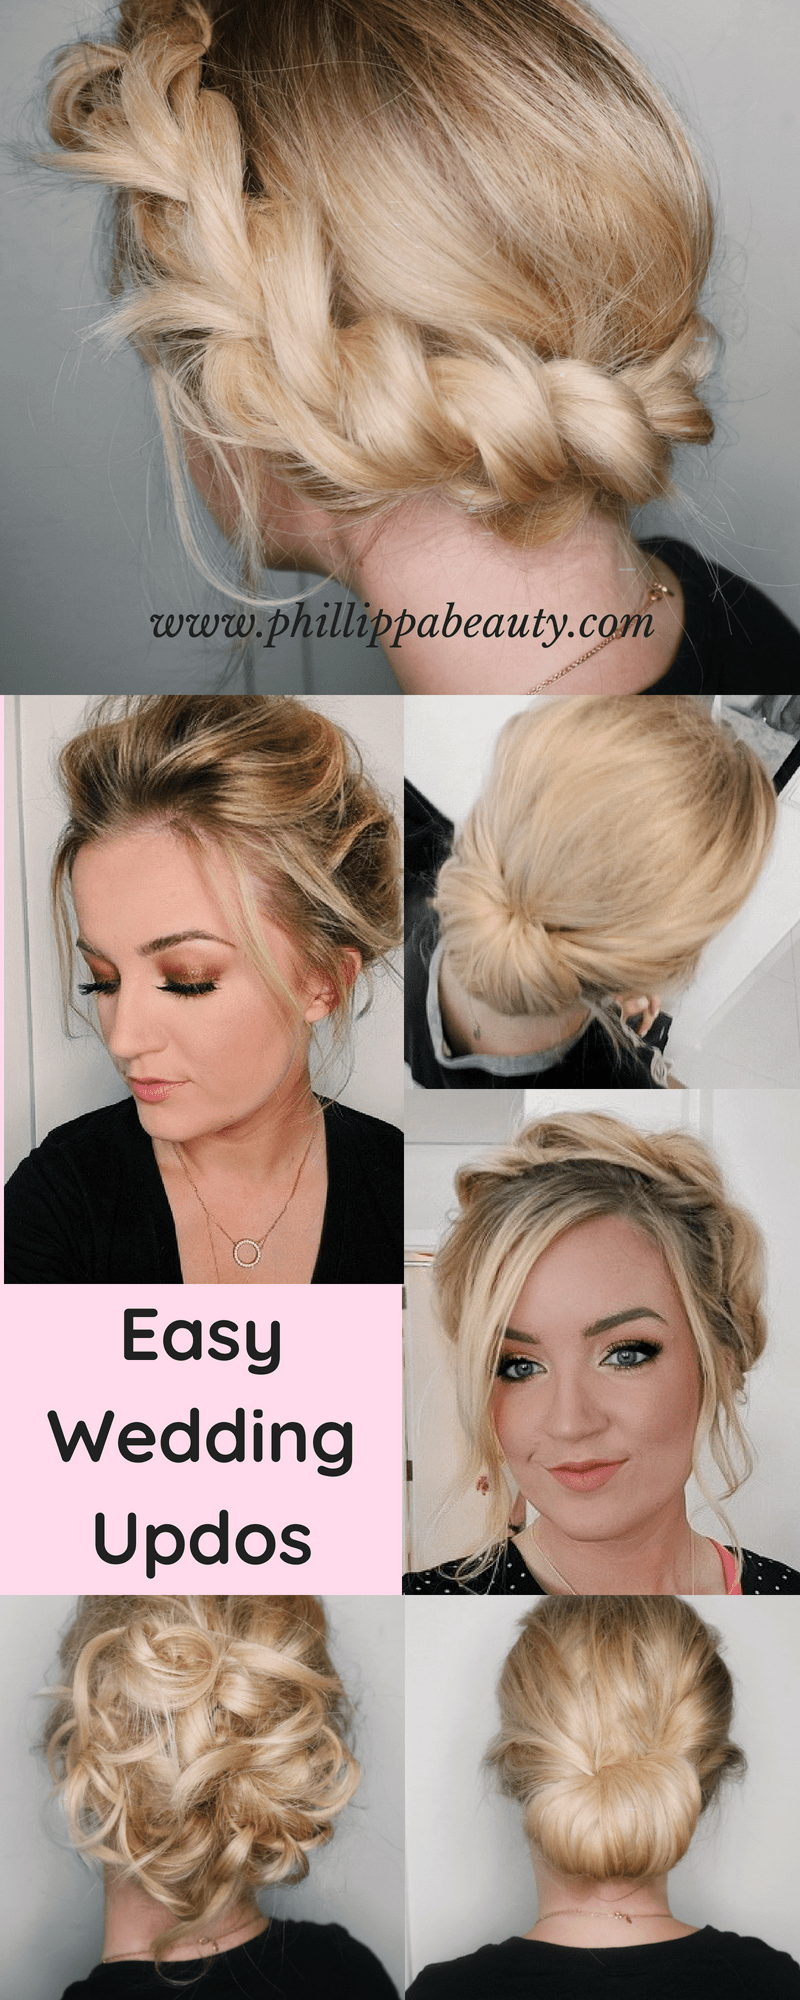 Easy Wedding Updos Diy Bridesmaid Hairstyles If You Re Looking For An Easy Wedding Updo Bridesmaid Hair Tutorial Bridesmaid Hair Medium Length Hair Styles